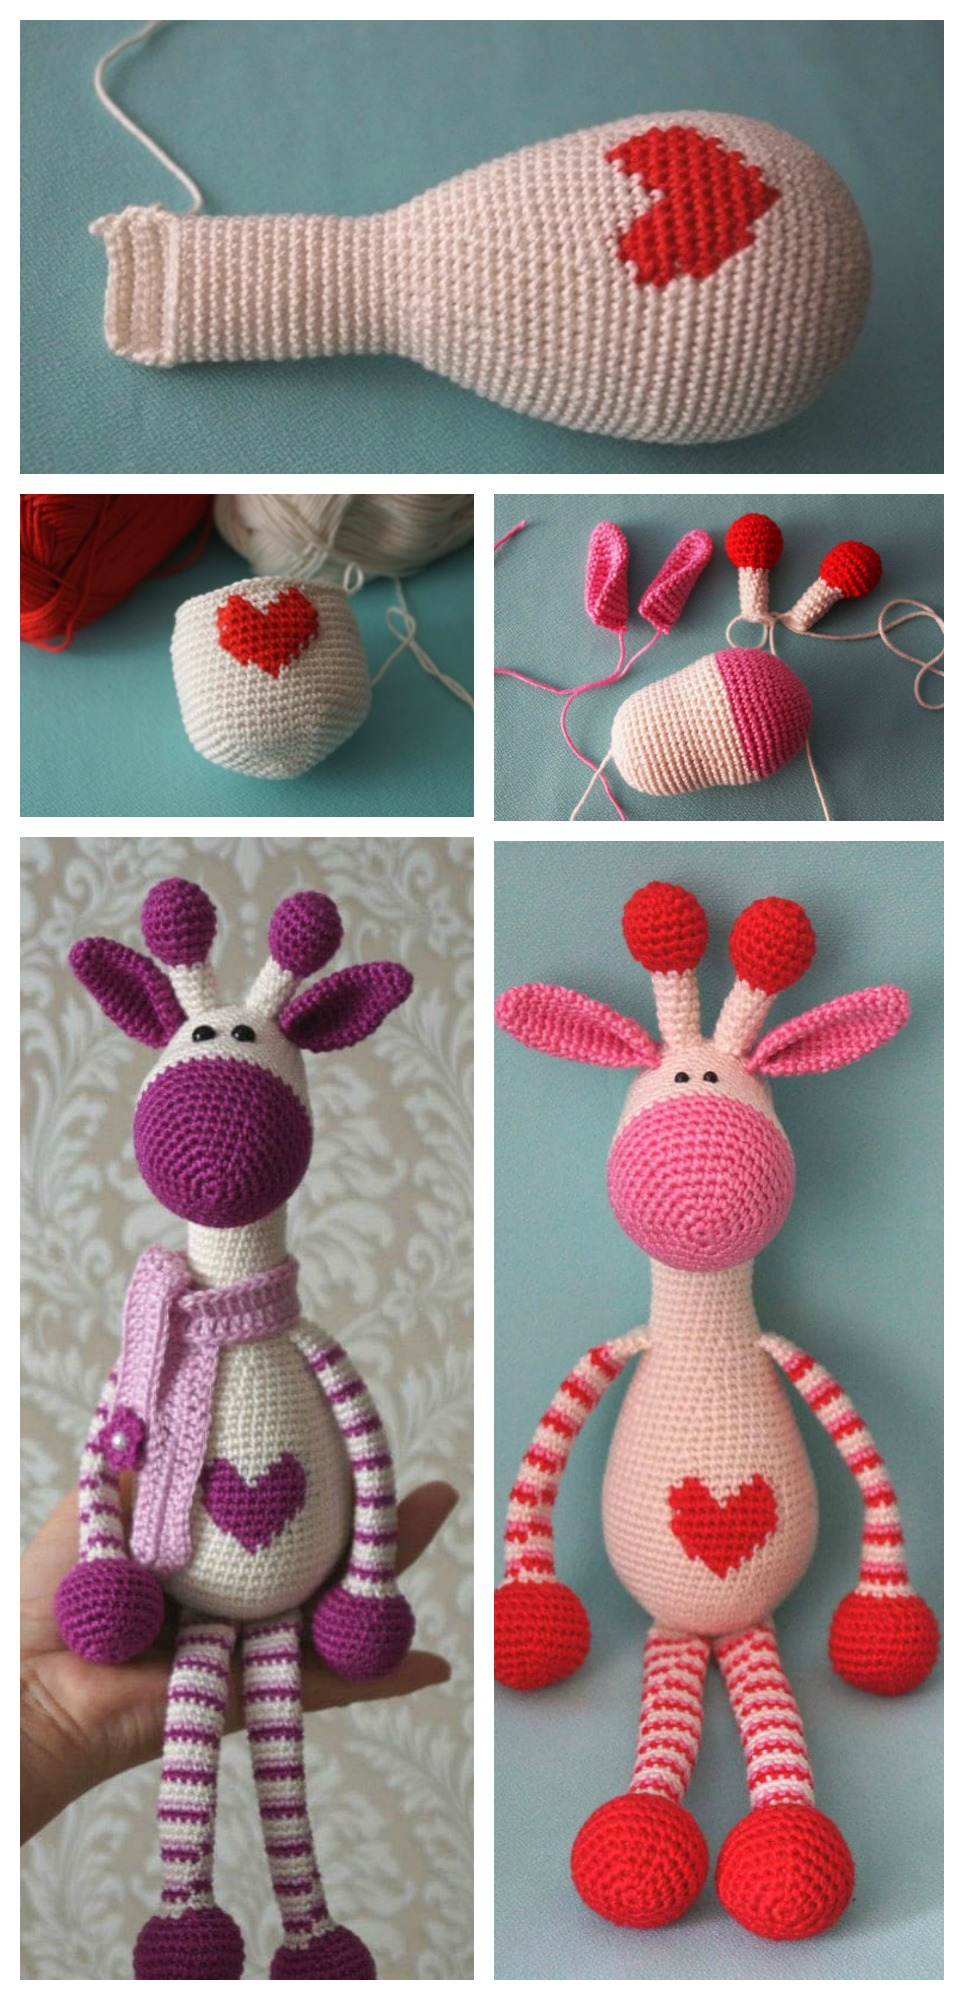 Cute Crochet Giraffe Amigurumi Free Pattern - DIY 4 EVER